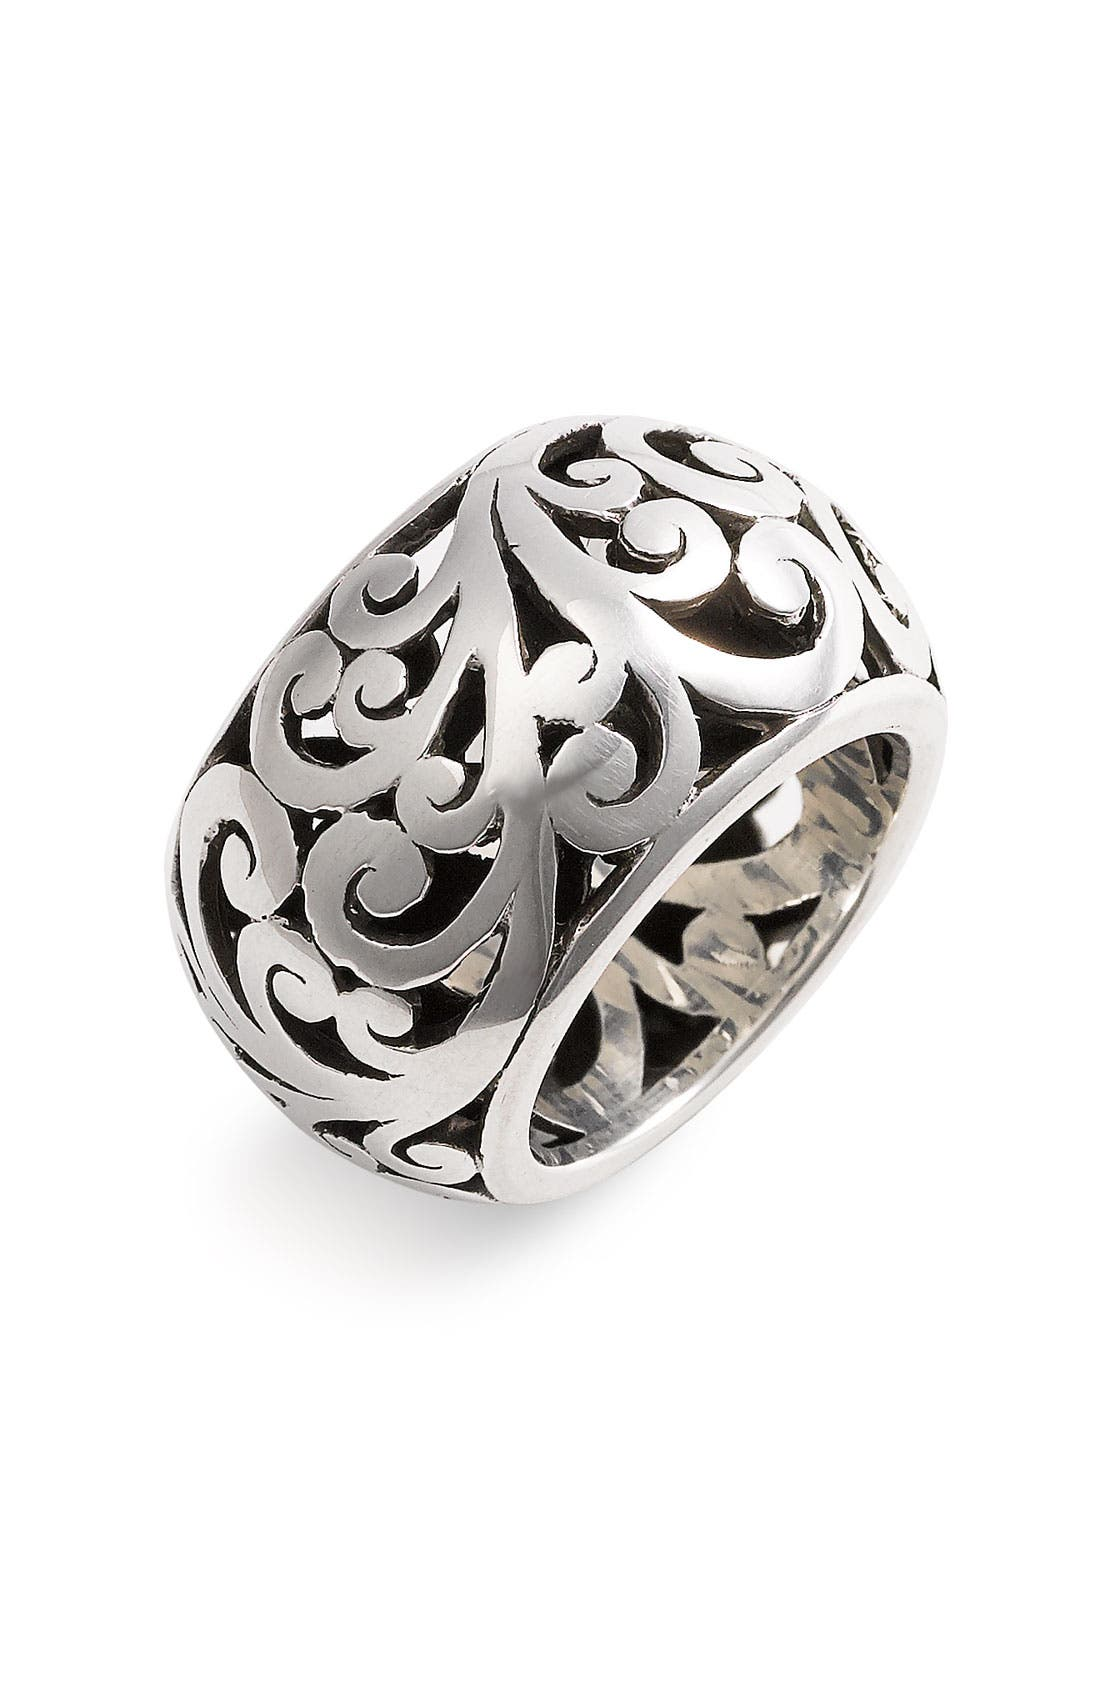 Main Image - Lois Hill 'Cage' Cigar Band Ring